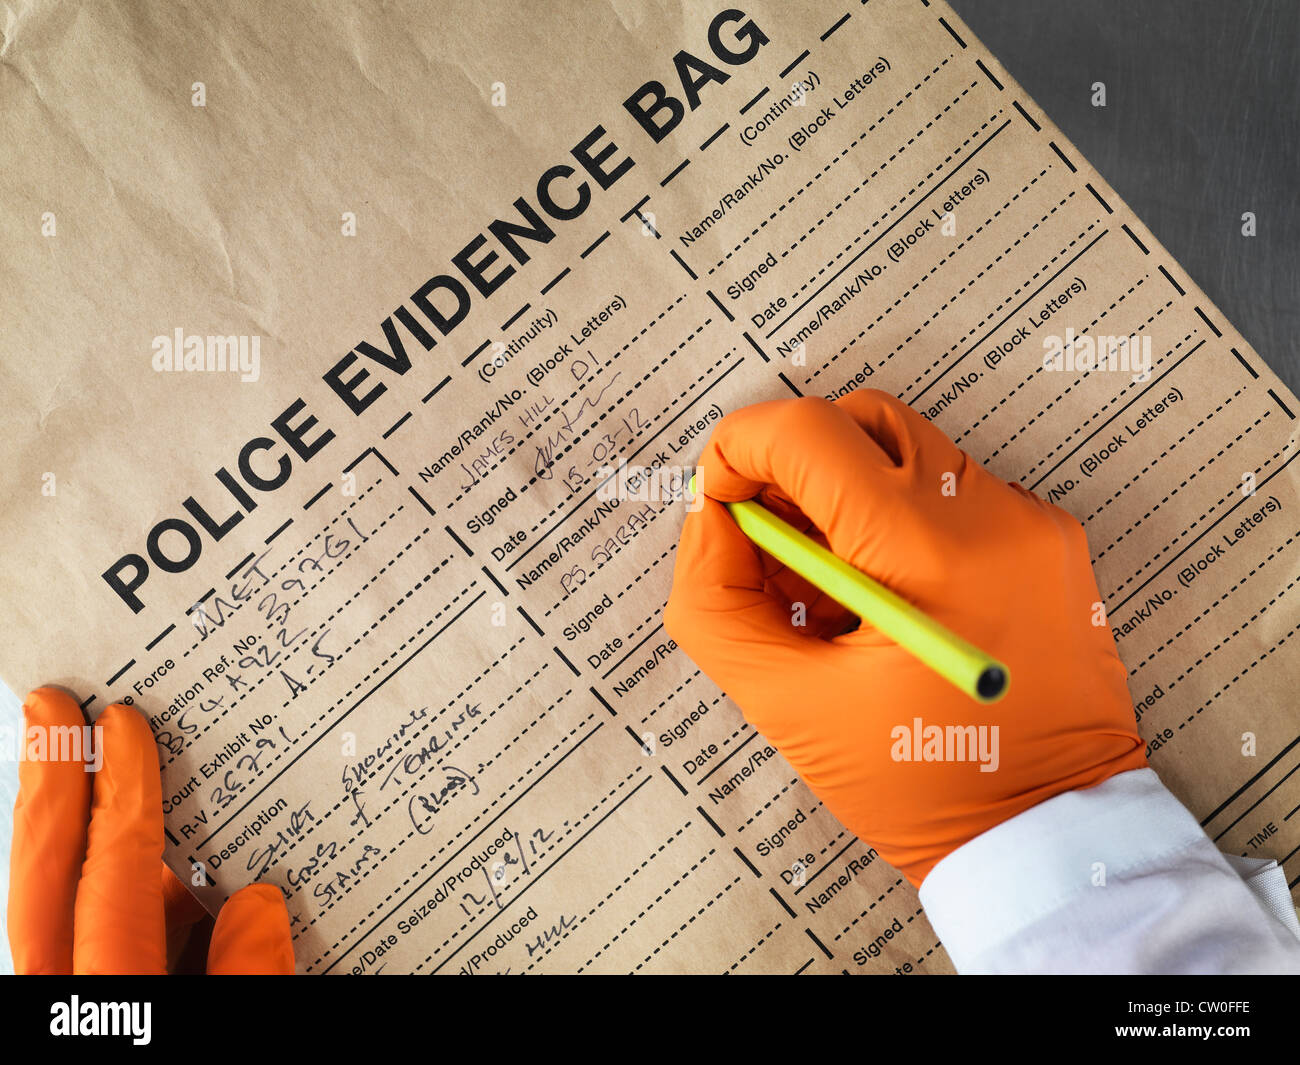 Scientist filling out evidence bag - Stock Image